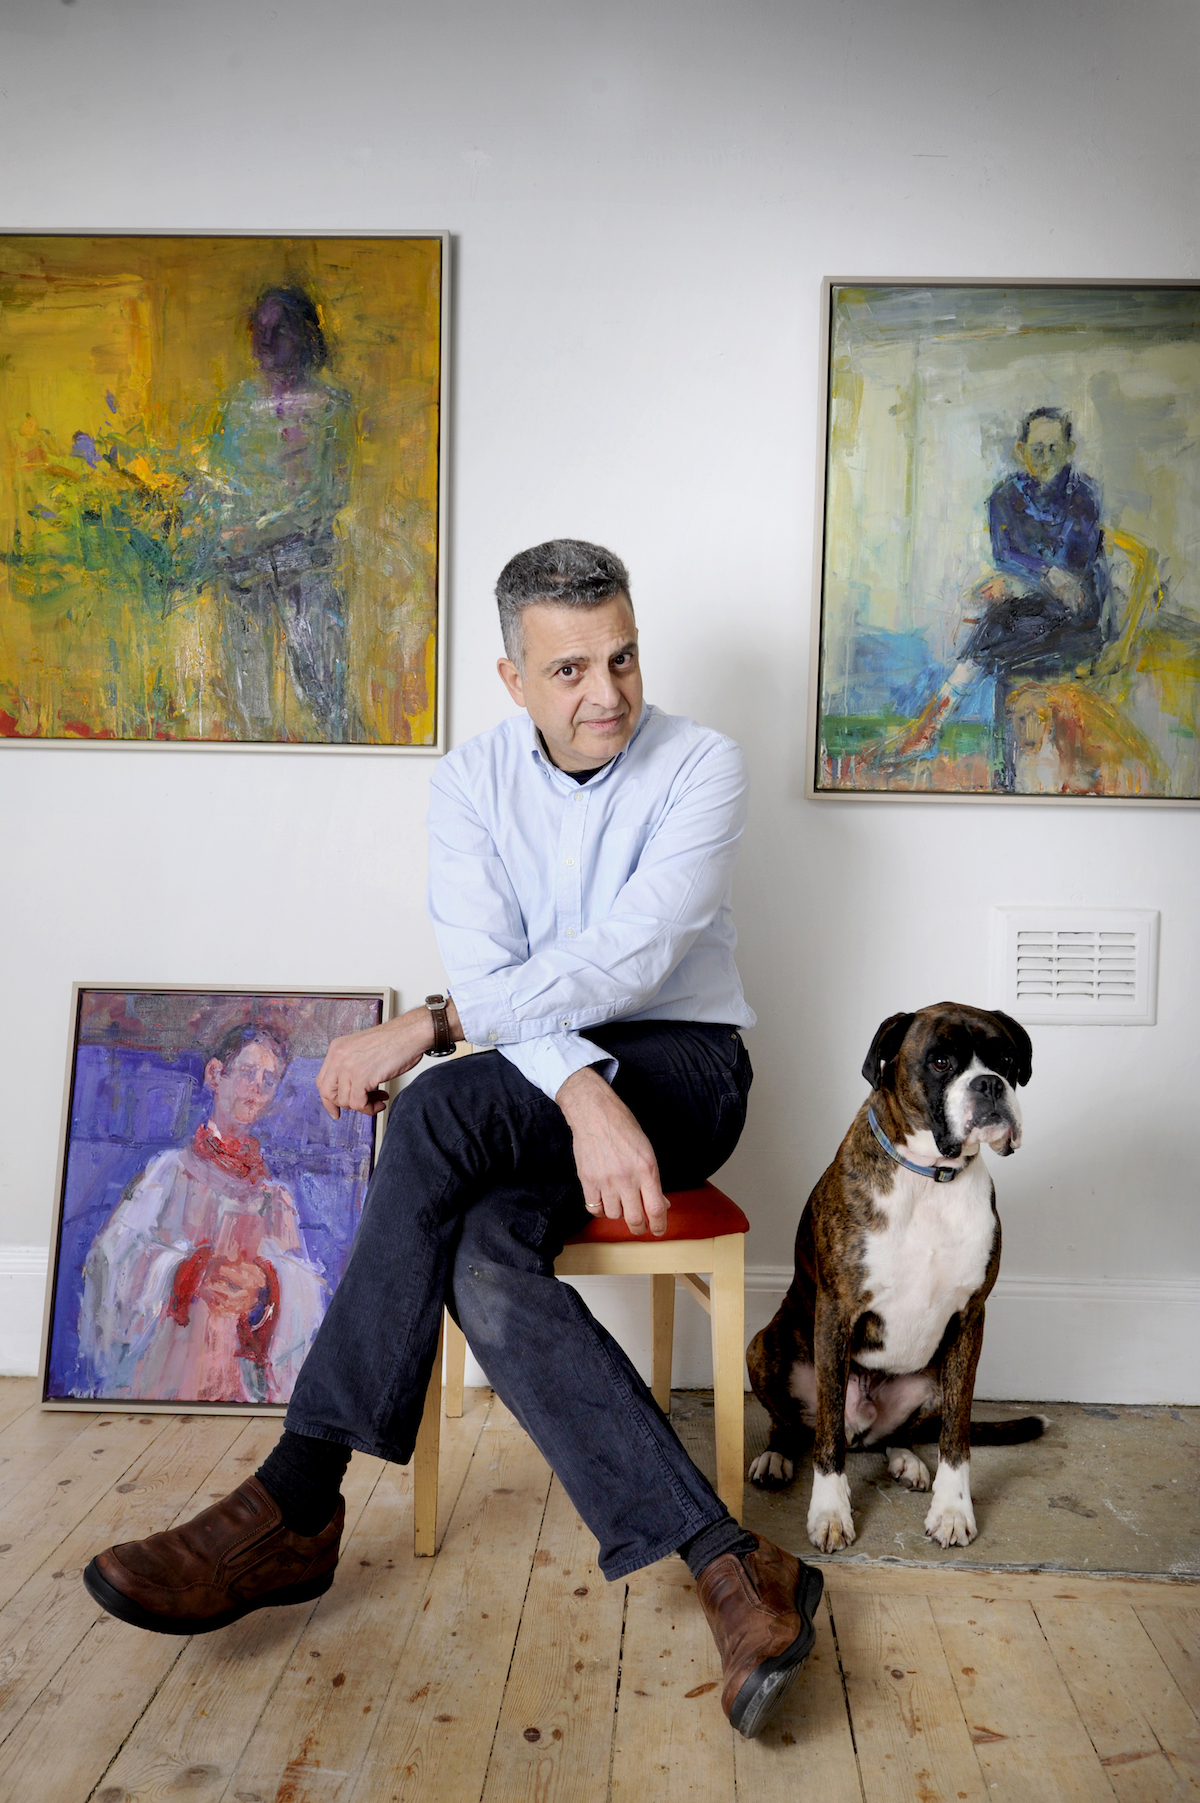 "FREE PICTURE: Artist Henry Jabber Exhibition at Union Gallery, Edinburgh, 03/03/2017: Artist Henry Jabbour (correct) at his Union Gallery exhibition of paintings, Edinburgh. Pictured with Dennis the galery mascot / dog, and Henry's paintings including ""Seated Man With Dog"" (top right). Henry left a successful career as a research scientist to train as a painter is to have his first solo exhibition, opening in Edinburgh's Union Gallery on Saturday (4th March 2017, and until 1st April 2017). Henry Jabbour, who worked for nearly 20 years based at the Medical School at Edinburgh University, left his job in medical research to train as an artist. Henry, who was born in Lebanon, worked for the Medical Research Council in Edinburgh before quitting to paint full-time in 2010. He said: ""For many years, I was working as a scientist and painting every moment I could in my spare time. Bit by bit, my passion for art outgrew my passion for the science. More information from: Susan Mansfield - PR consultant for the Union Gallery - 07803 620 038 - wordsmansfield@gmail.com Photography for Union Gallery from: Colin Hattersley Photography - www.colinhattersley.com - cphattersley@gmail.com - 07974 957 388. Free FIRST USE (ONLY) picture. Photography from: Colin Hattersley Photography - colinhattersley@btinternet.com - www.colinhattersley.com - 07974 957 388"